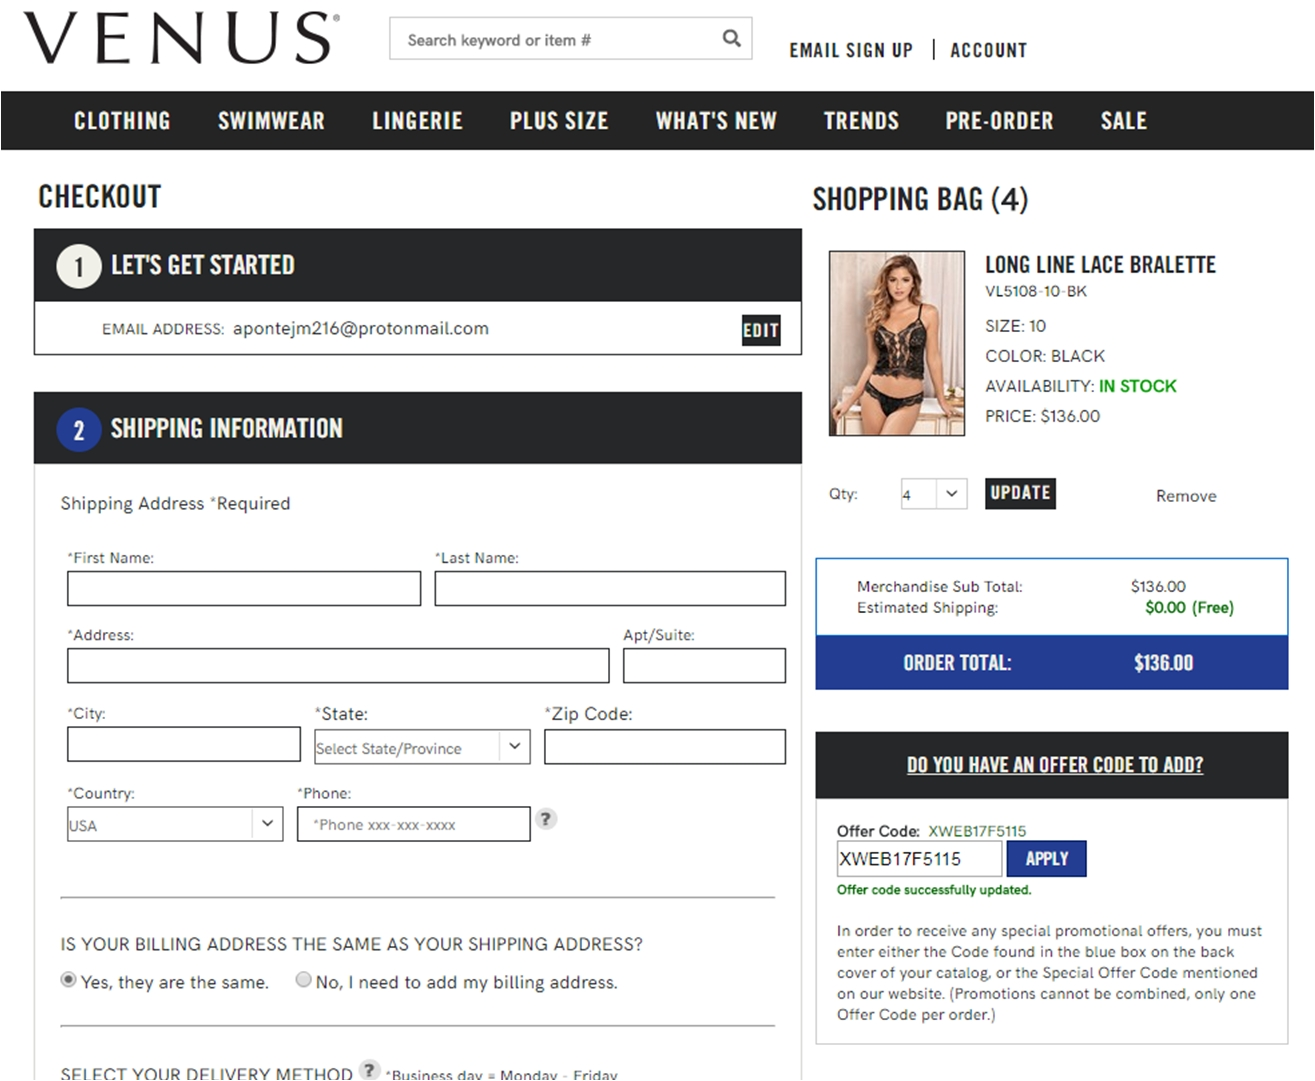 Venus coupon codes 20 off and $4.95 shipping